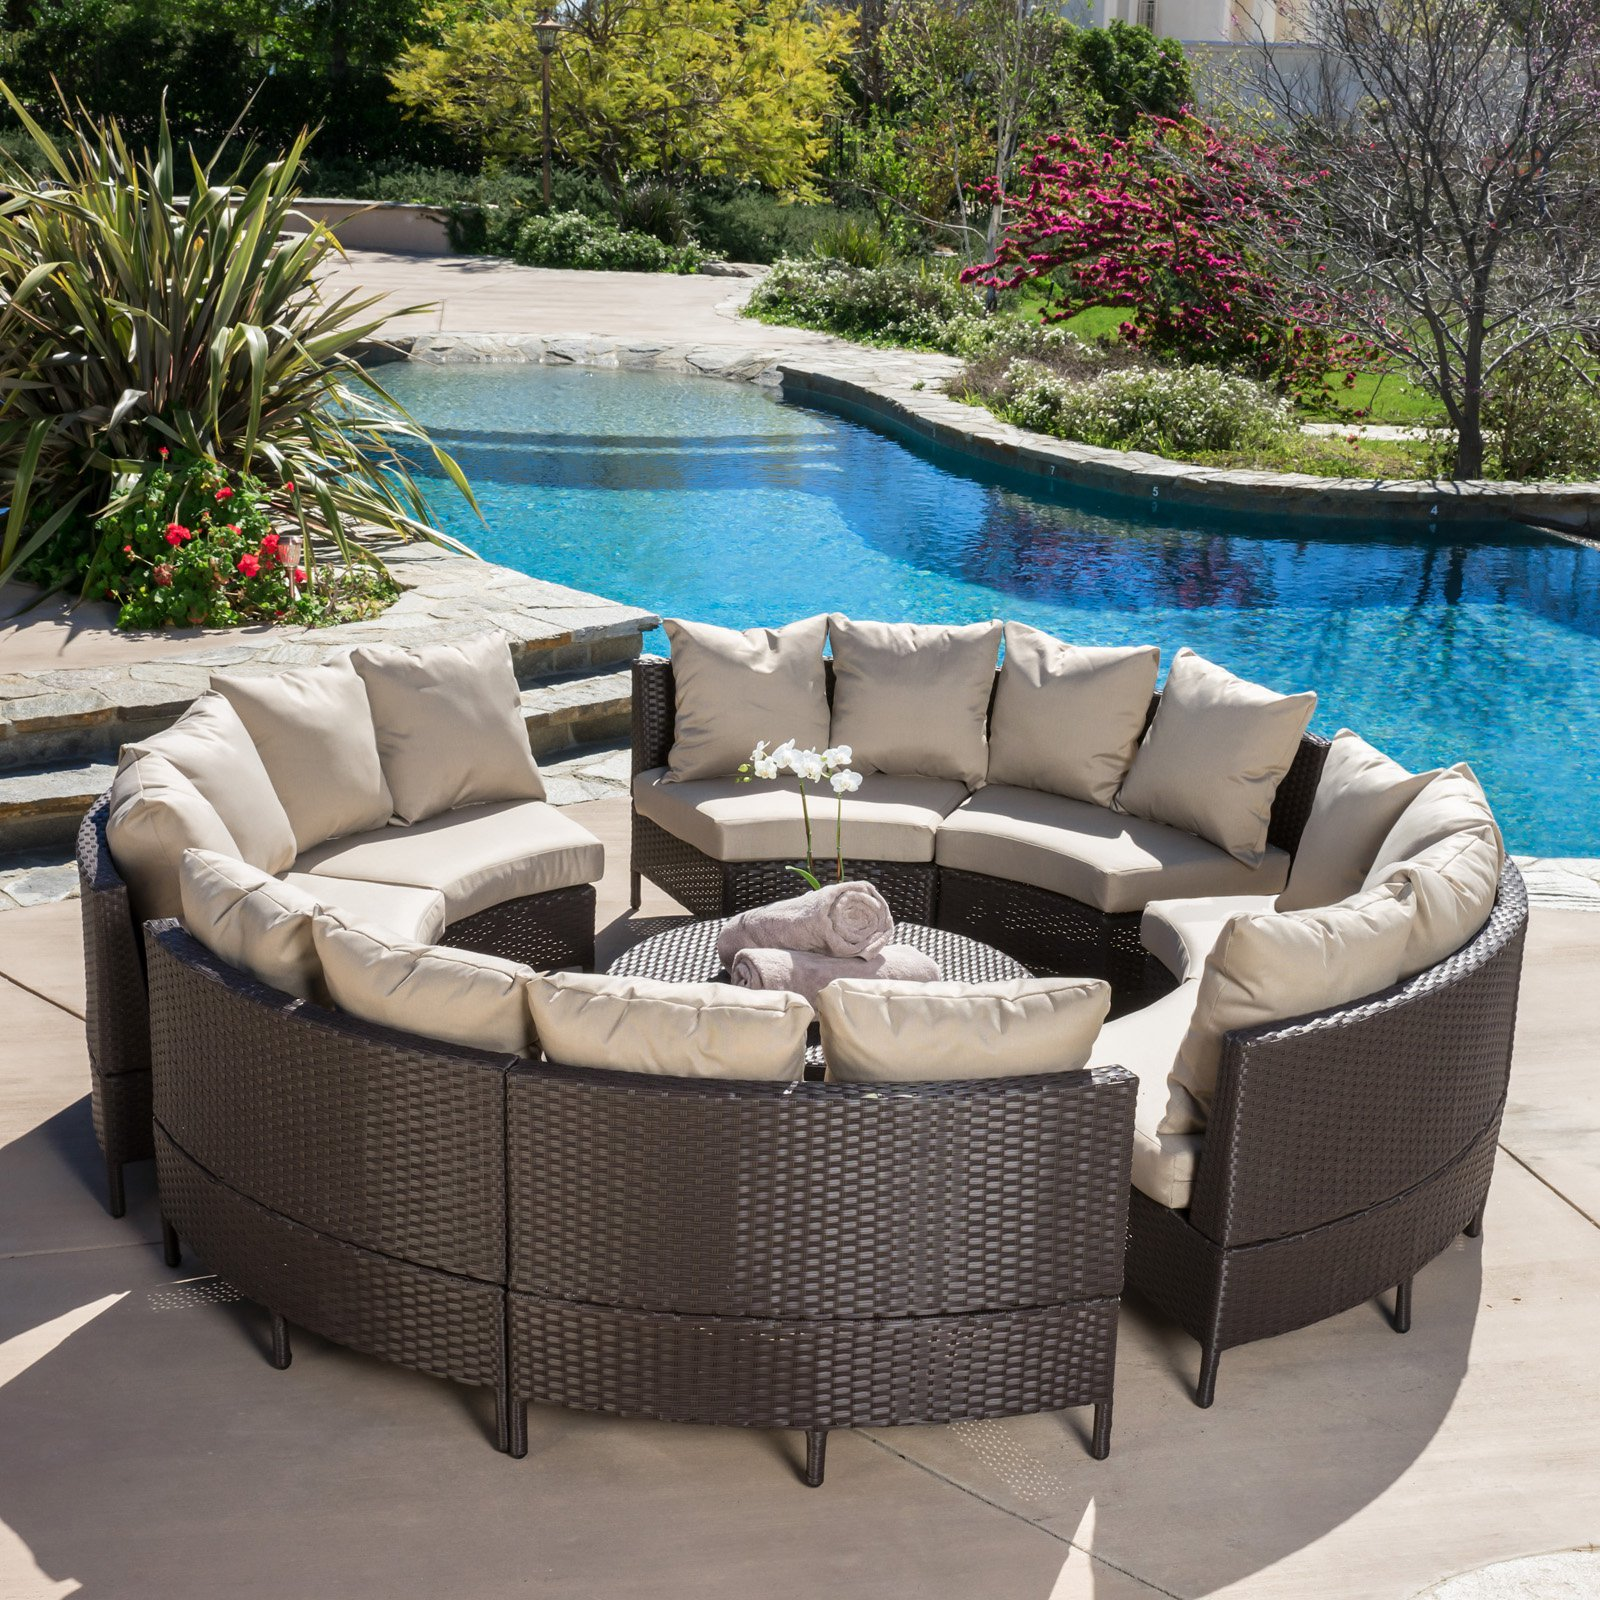 Avalon Wicker 10 Piece Patio Conversation Set with Cushions by Best Selling Home Decor Furniture LLC